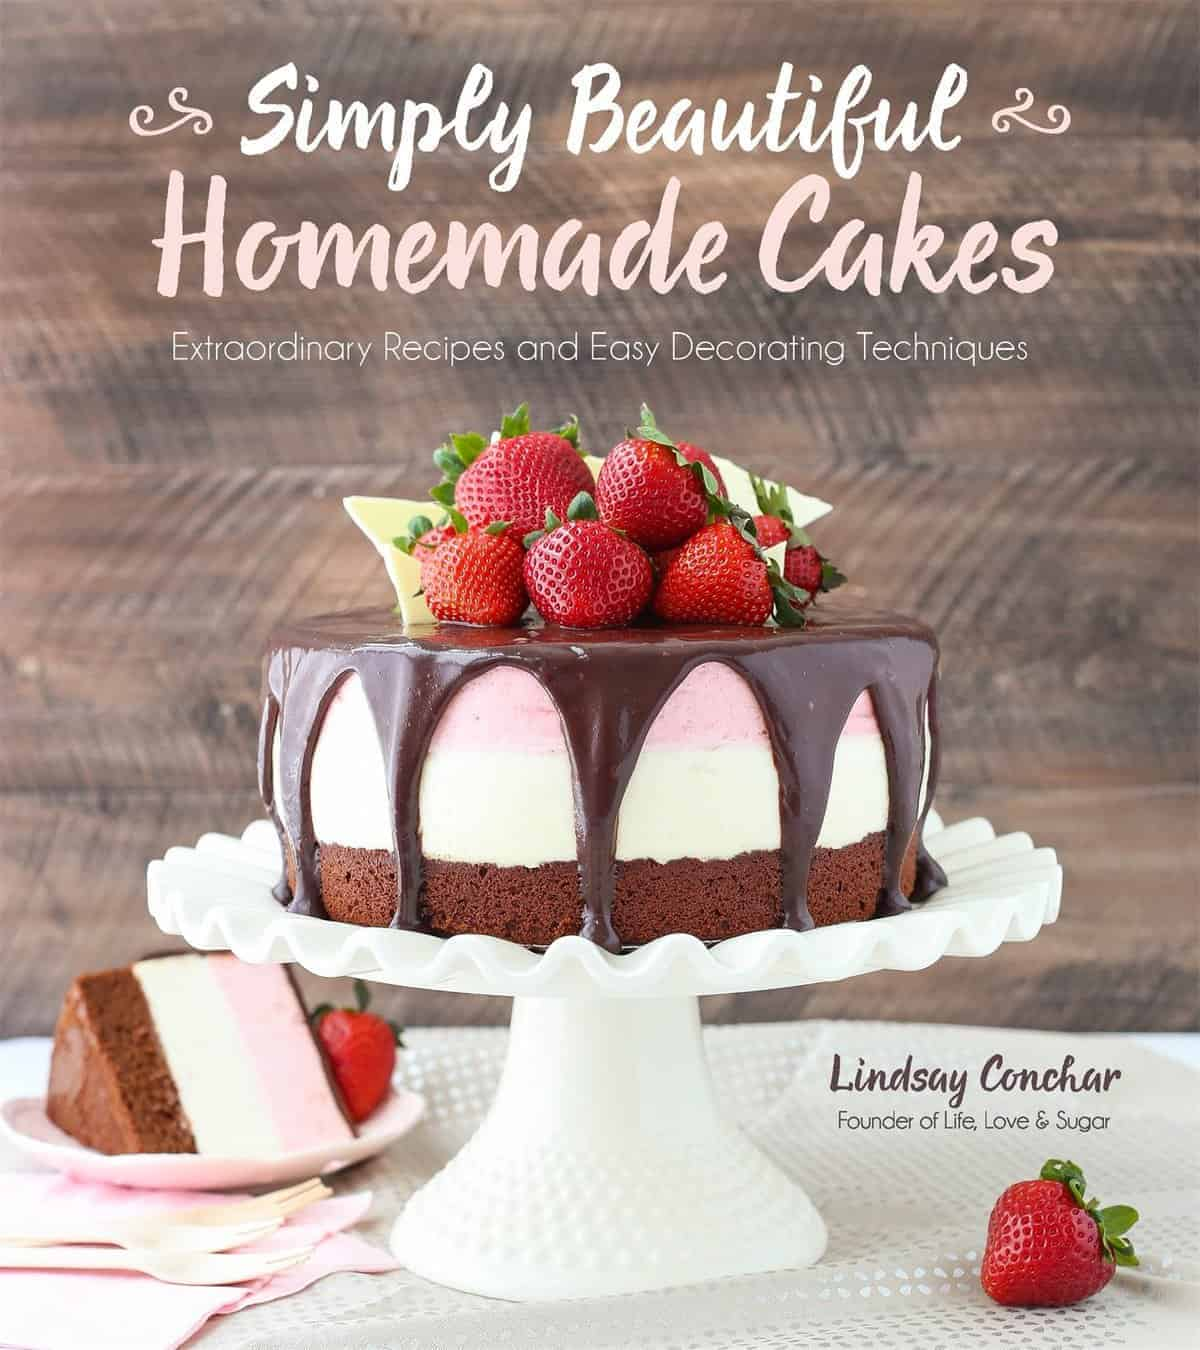 Simply Beautiful Homemade Cakes